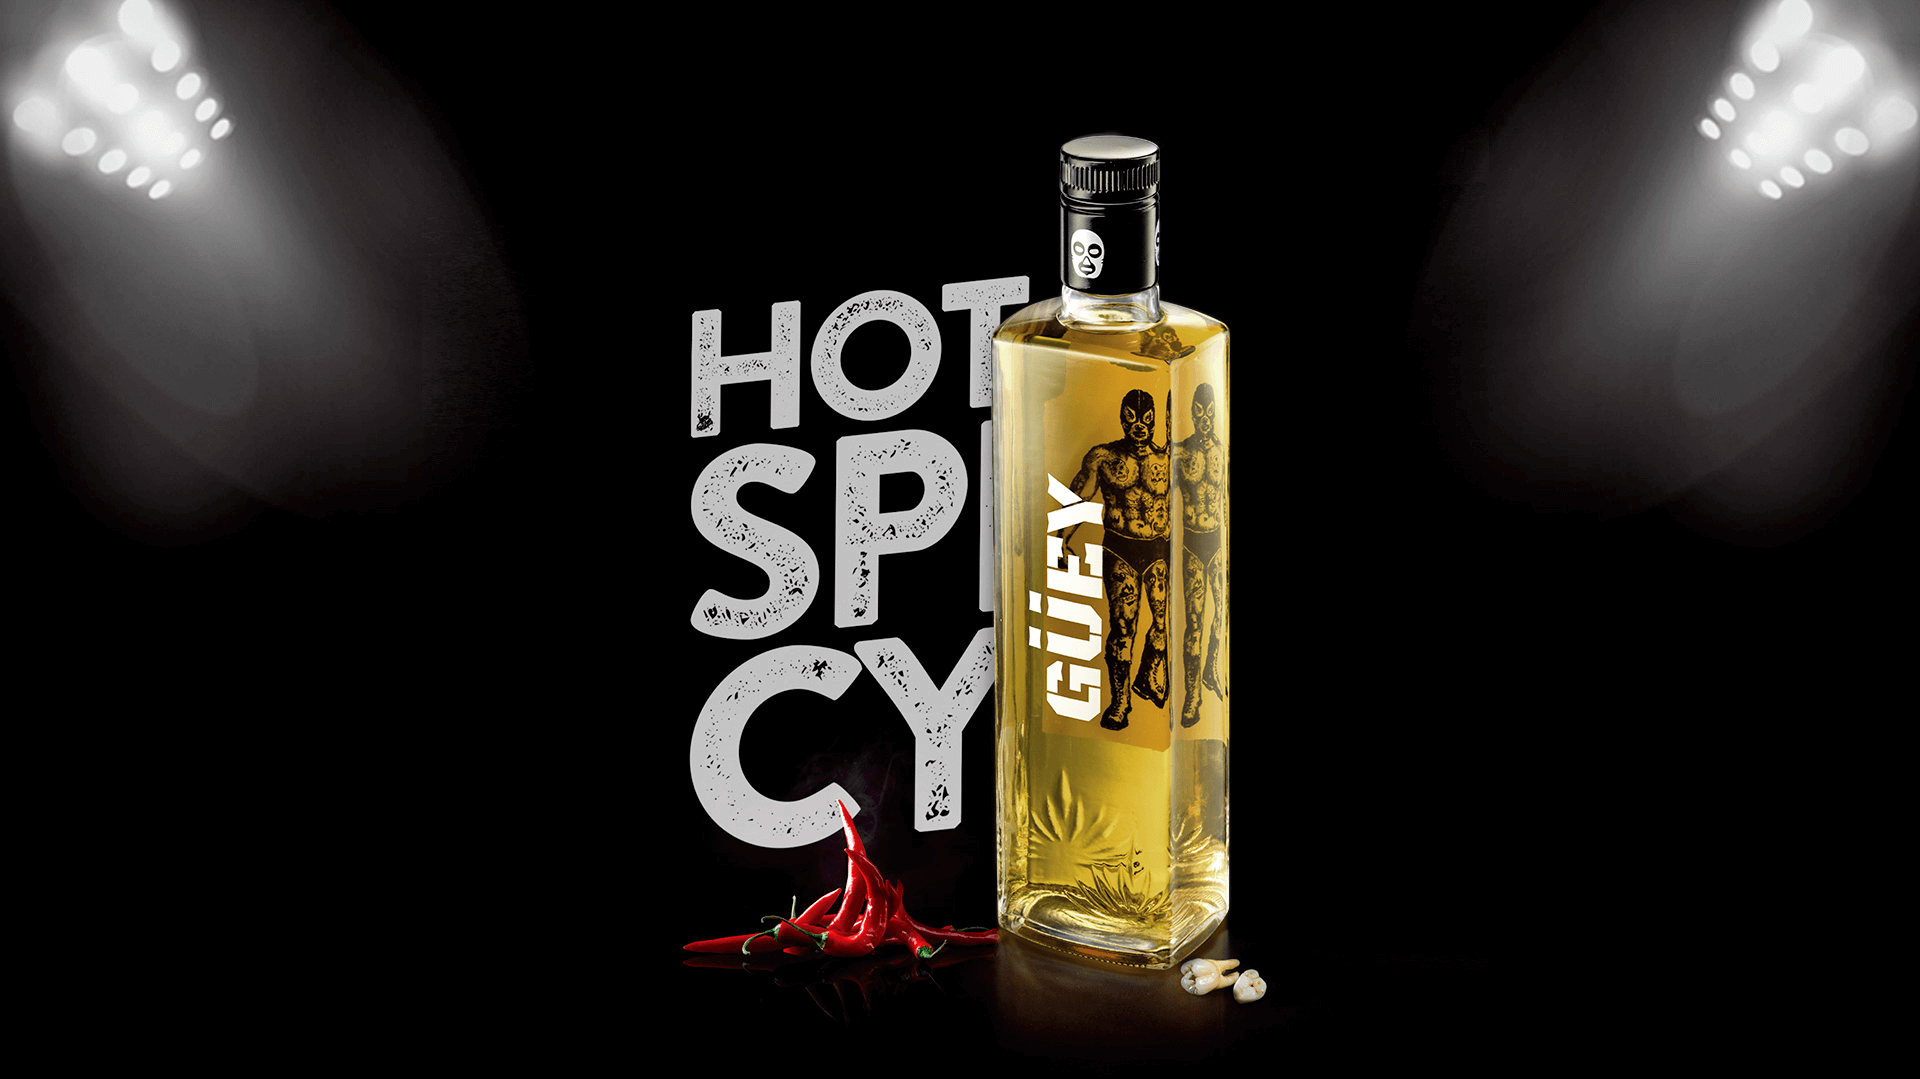 G-ey-Hot-Tequila-Gold